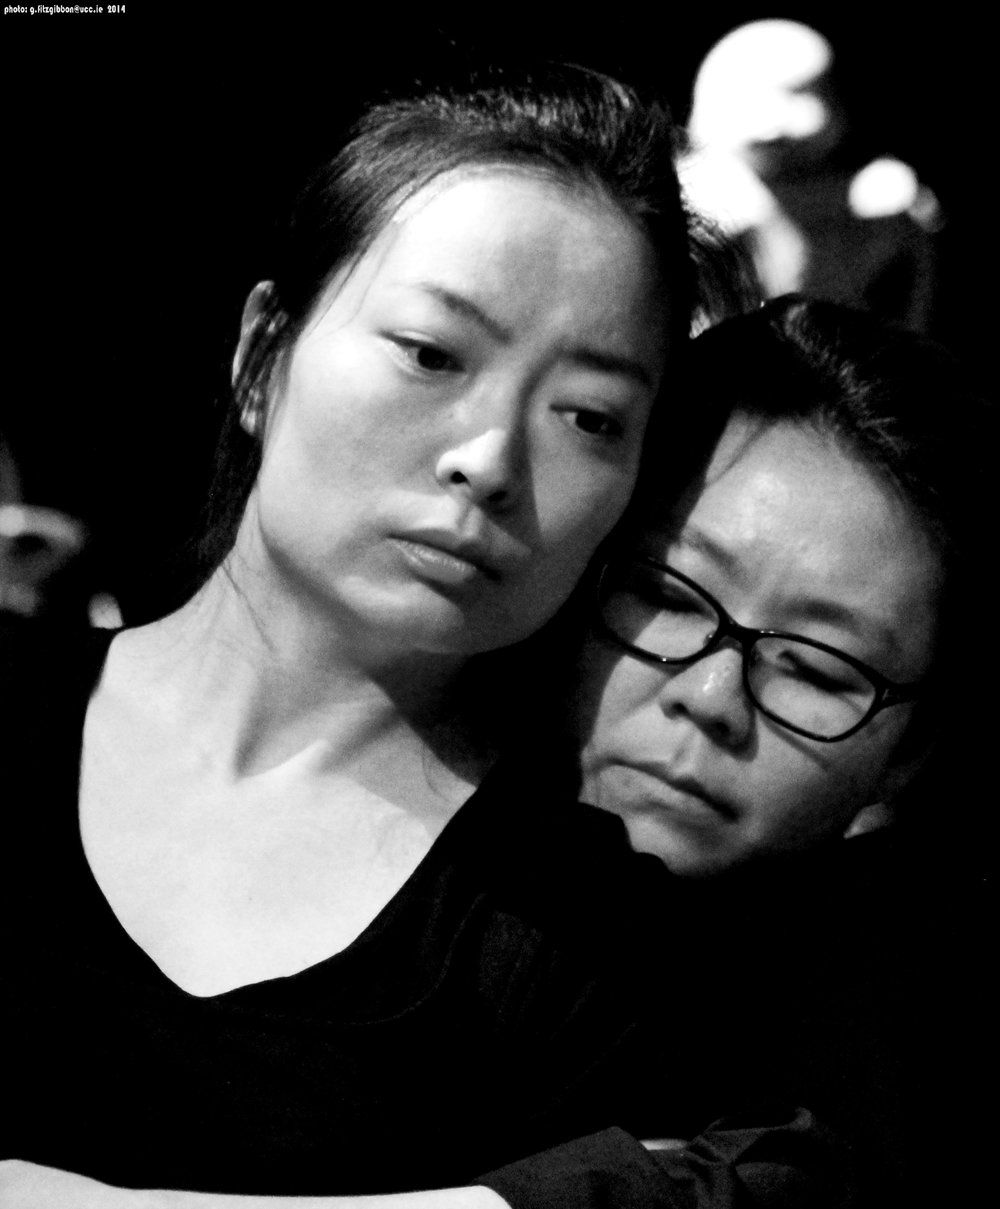 "Jeungsook Yoo and Sunhee Kim--the 'Korean sister-maids' in 'playing ""the maids""'"